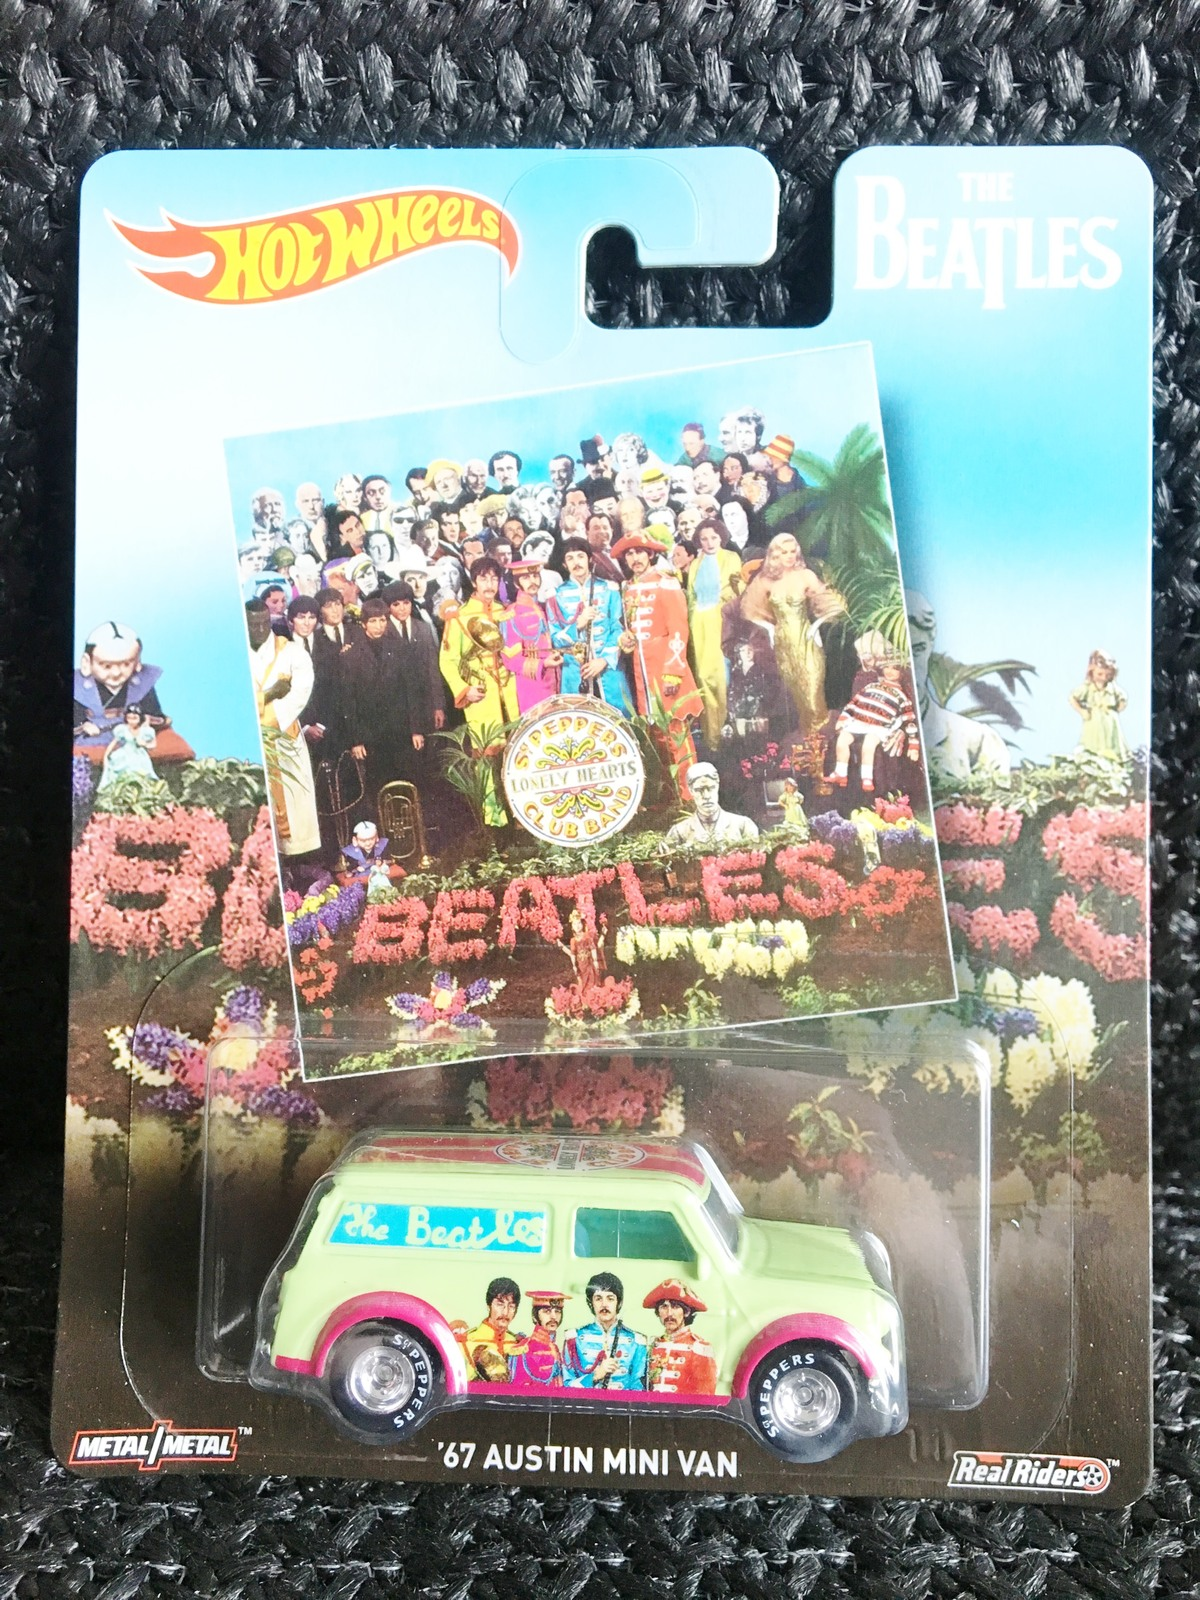 Hot Wheels The Beatles Sgt Pepper's Lonely Hearts Club Band 67 AUSTIN MINI VAN